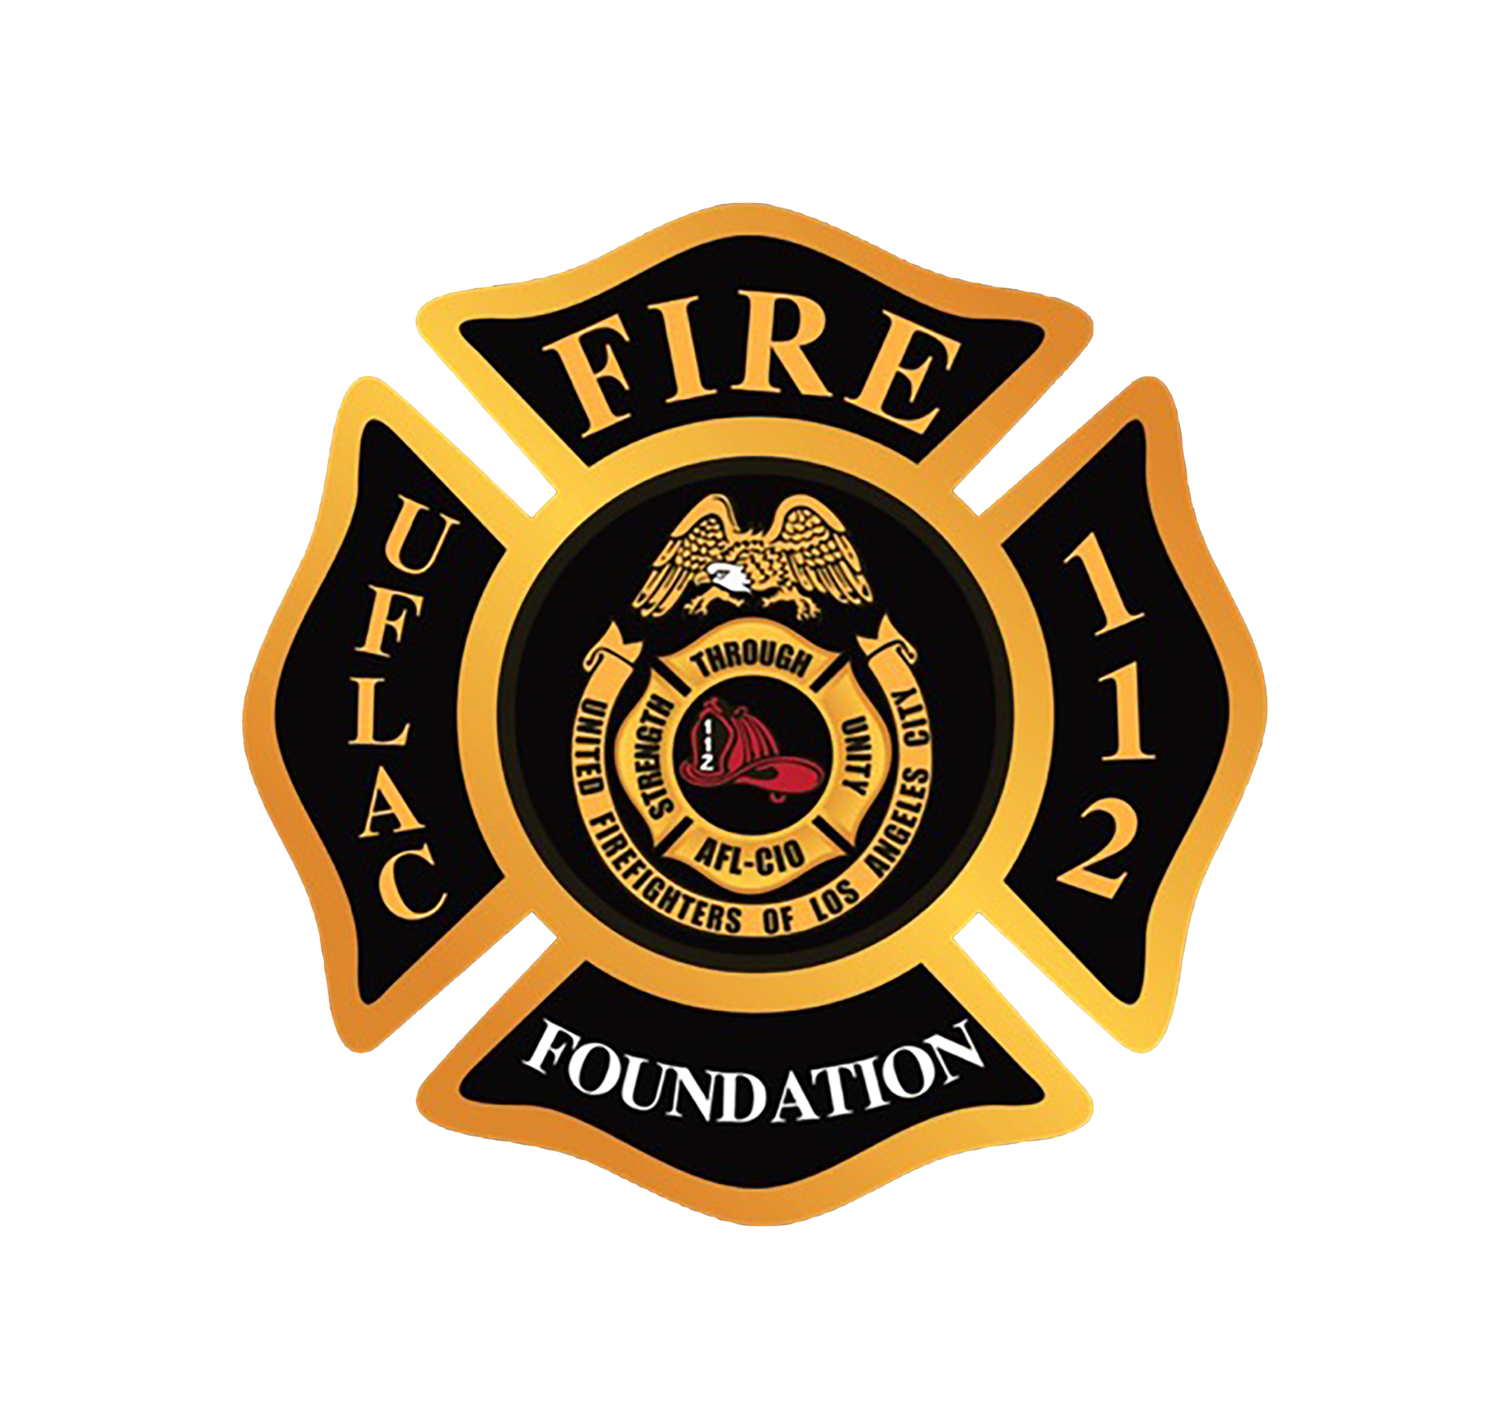 UFLAC Fire Foundation